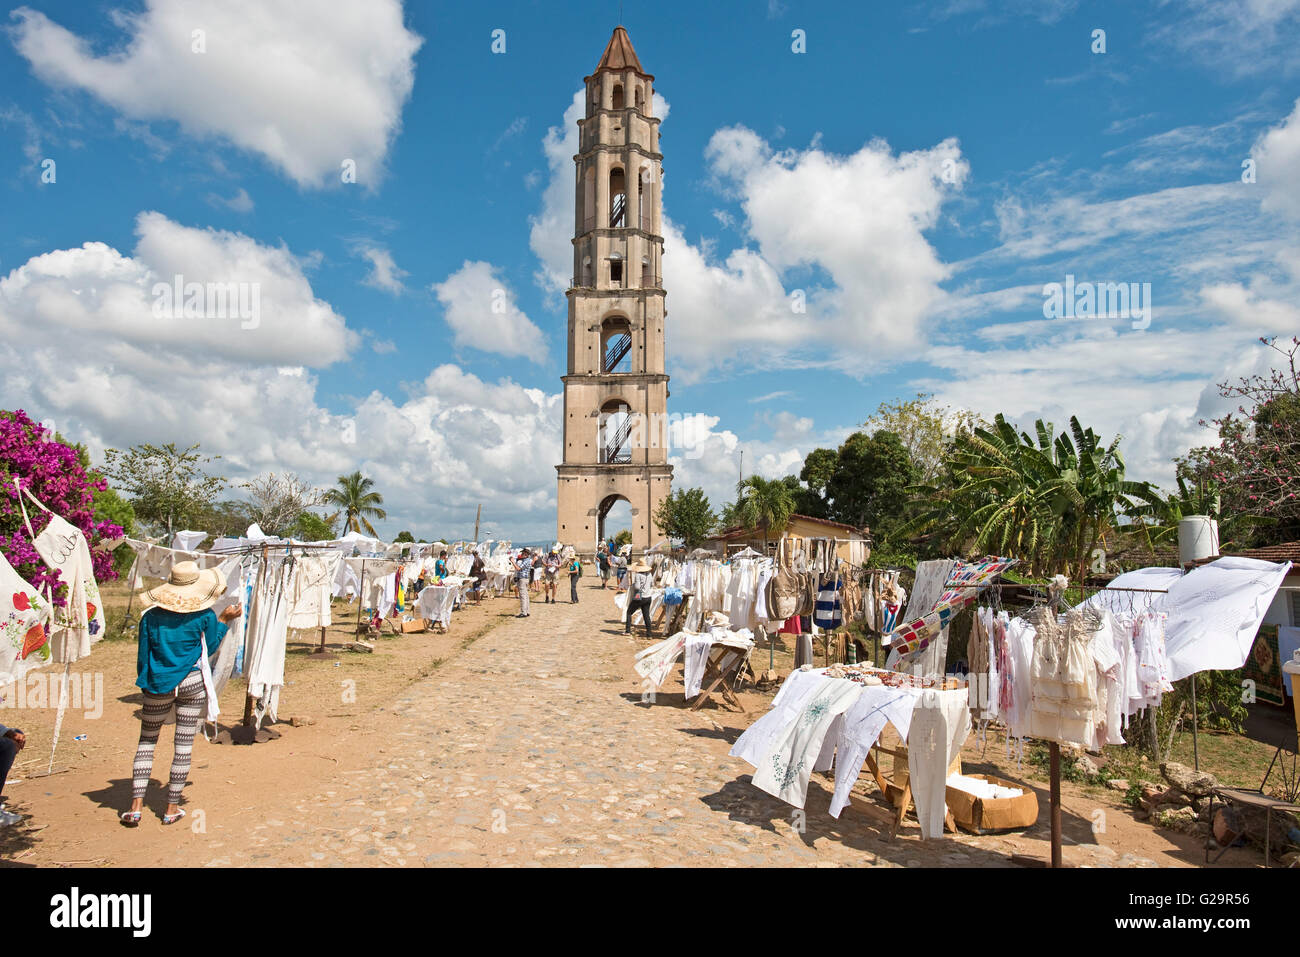 The tower at the Manaca Iznaga sugar cane plantation estate in the Valle de los Ingenios (Valley of the Sugar Mills), - Stock Image